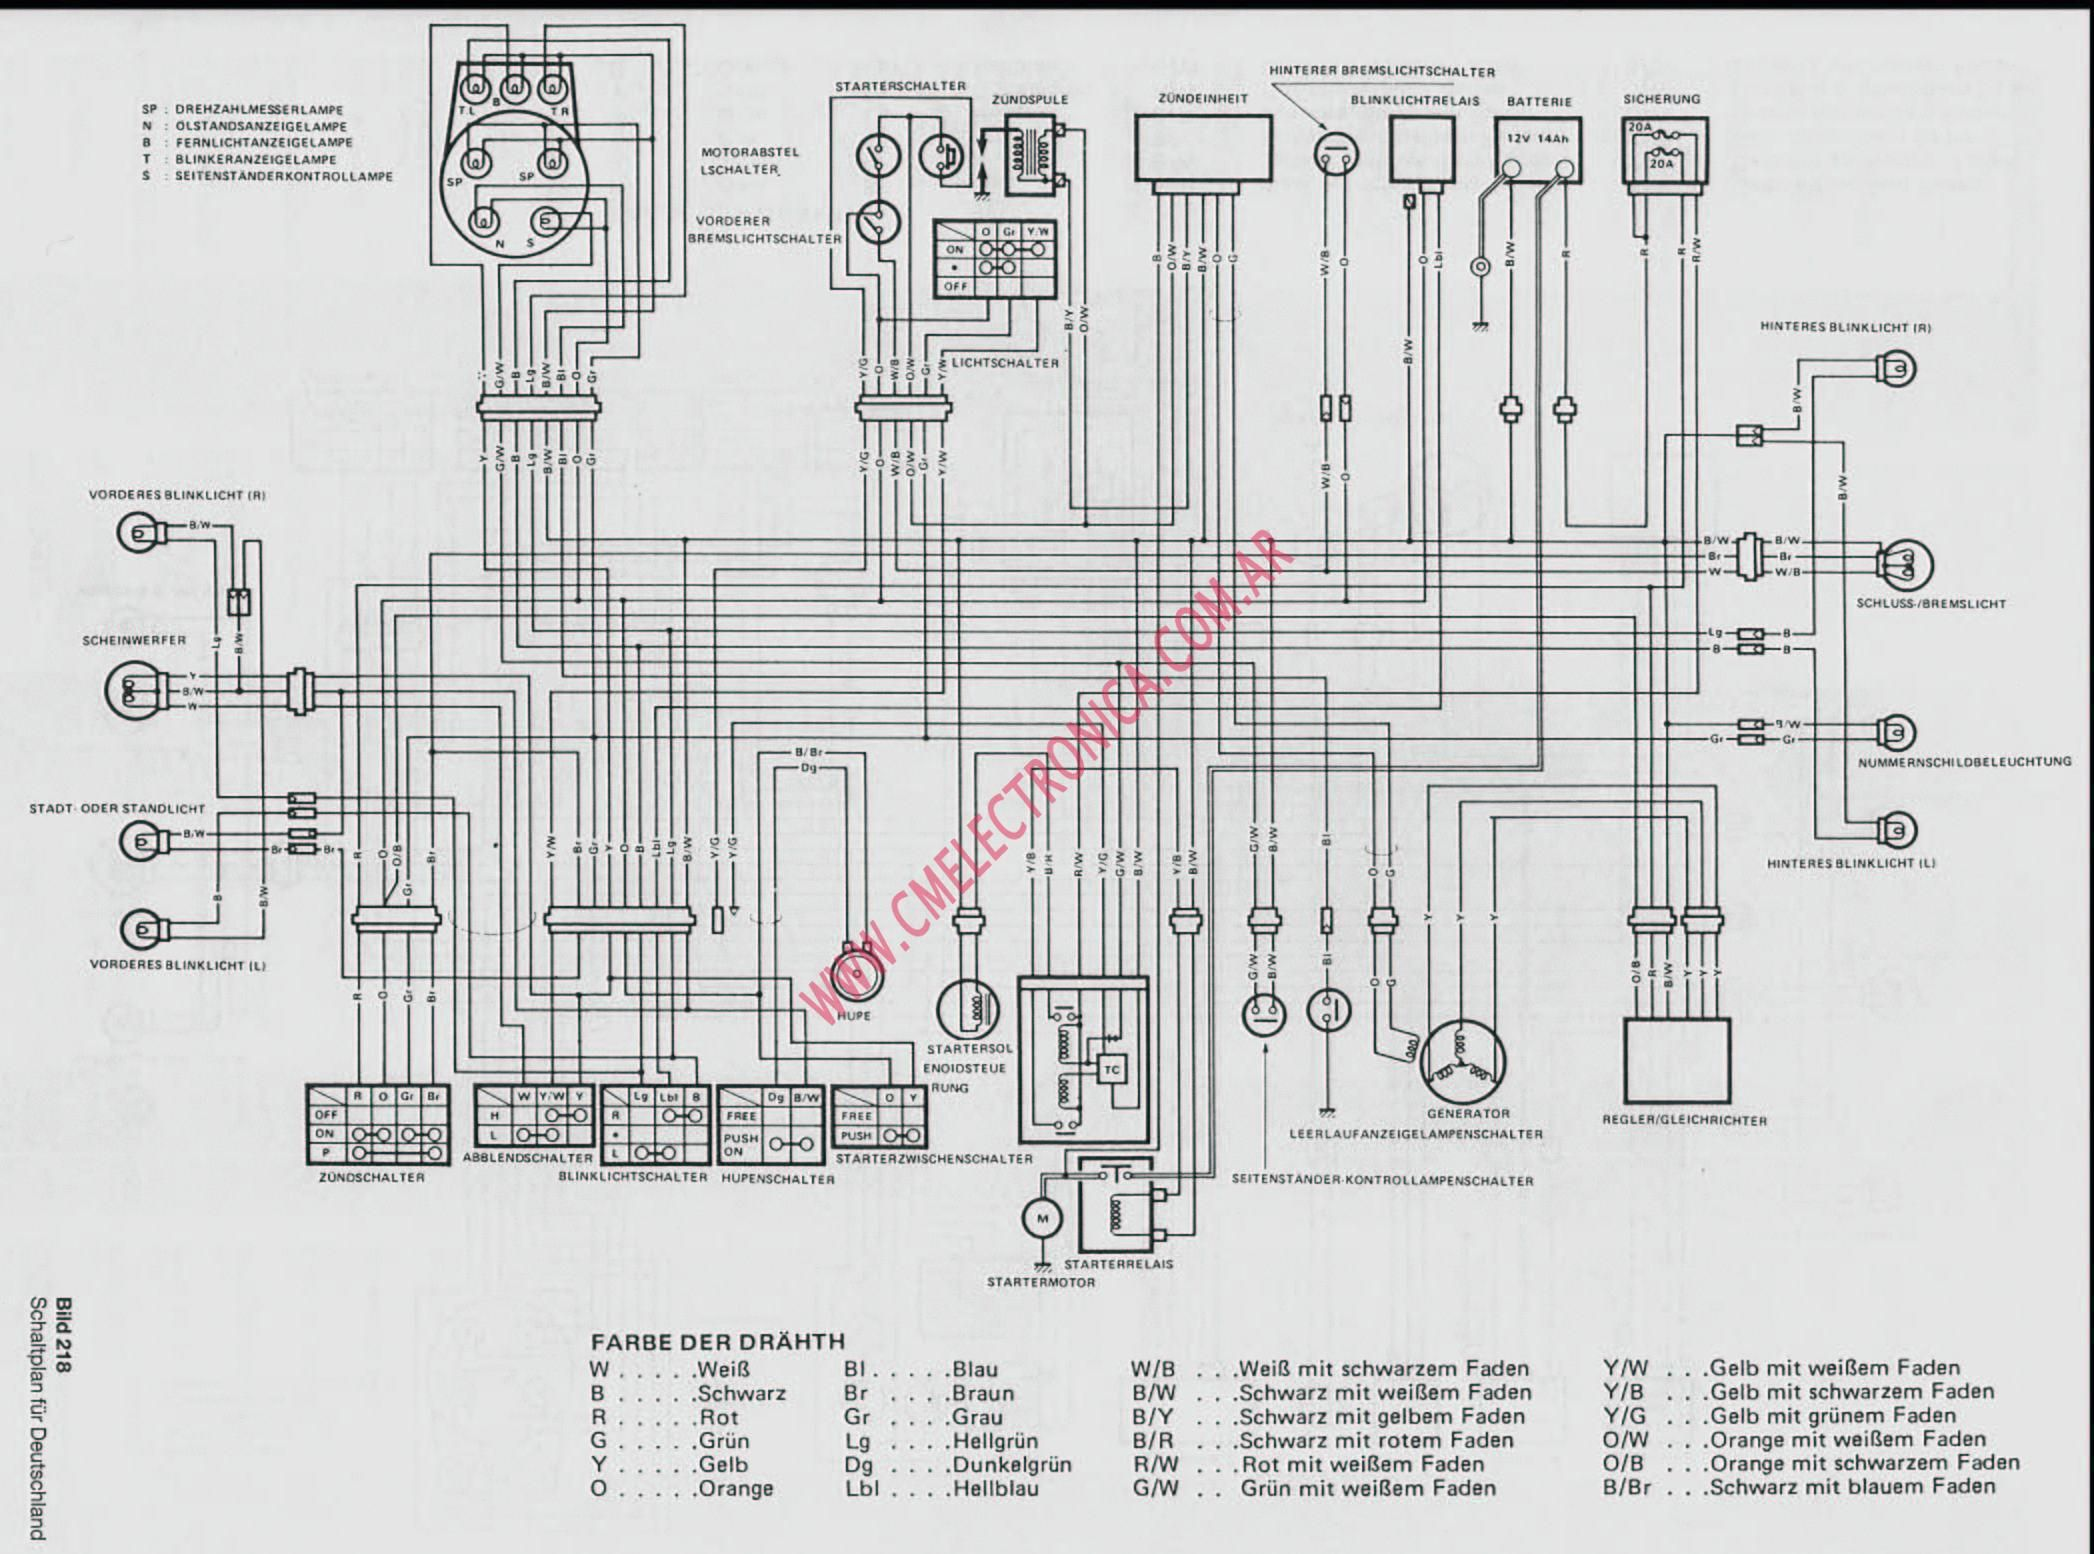 DIAGRAM] Suzuki C90 Wiring Diagram FULL Version HD Quality Wiring Diagram -  AMAZONASBR.COIFFURE-A-DOMICILE-67.FRamazonasbr.coiffure-a-domicile-67.fr